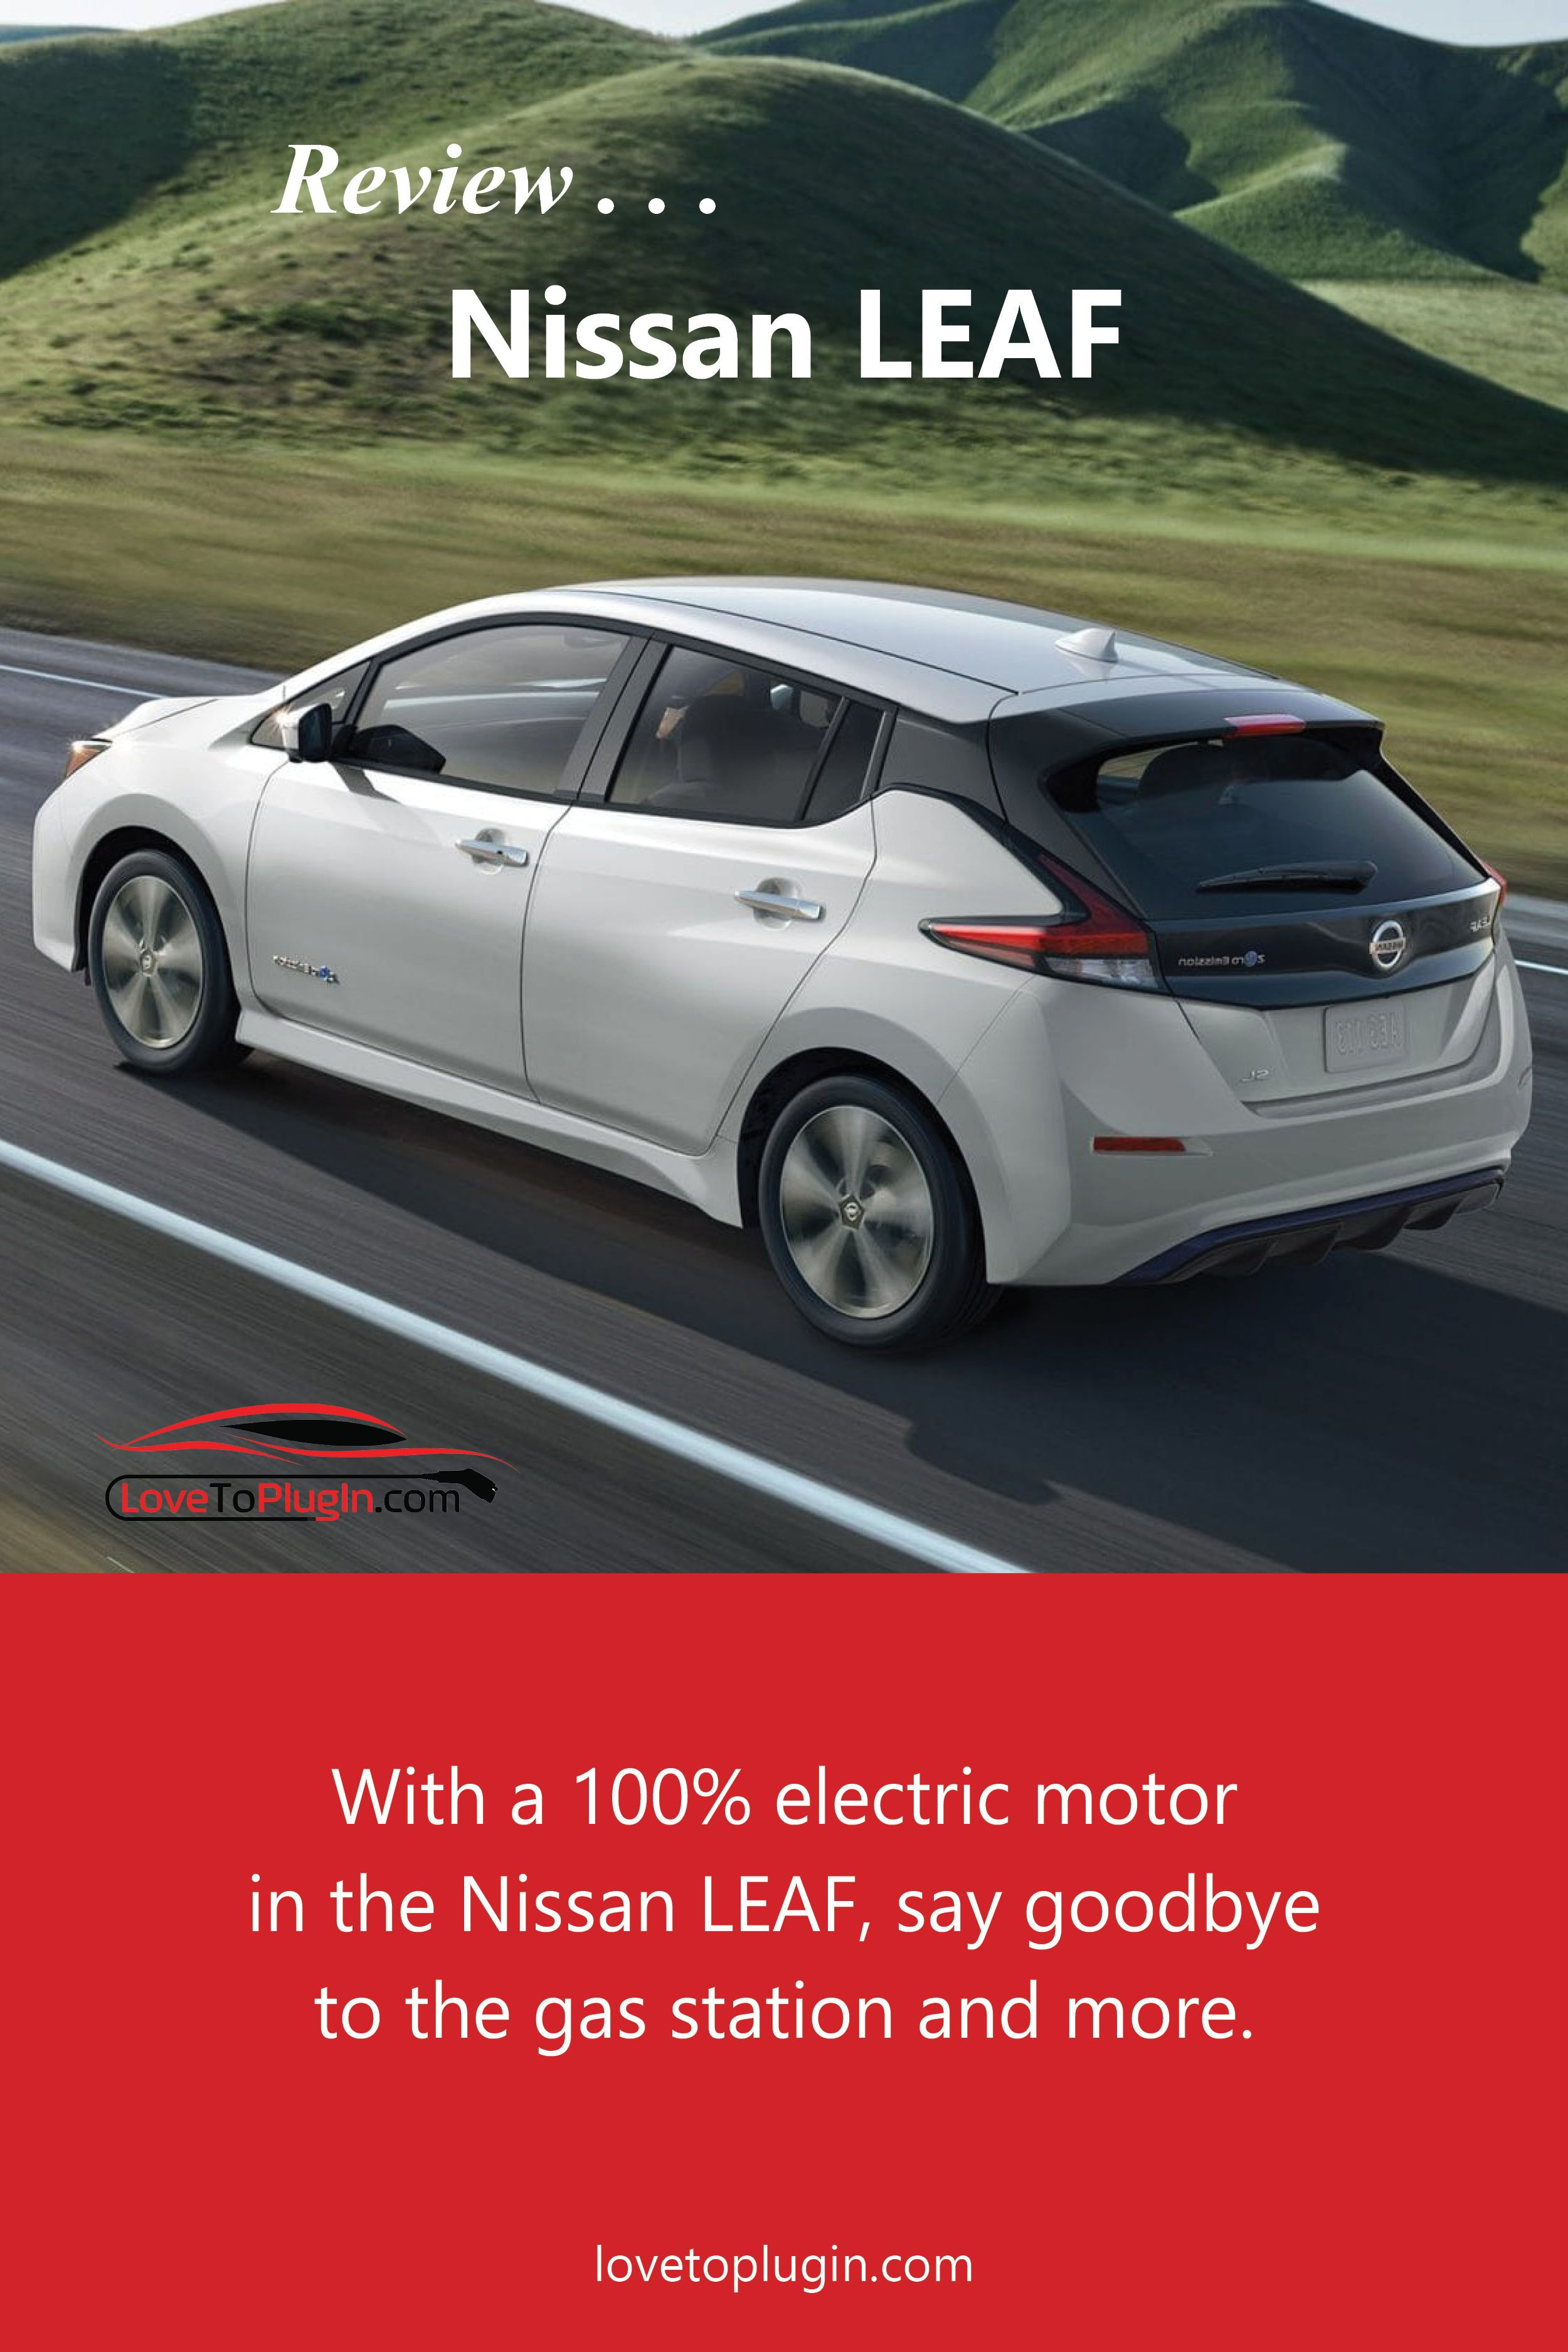 Nissan Leaf Info And Reviews Nissan Leaf Nissan Electric Cars